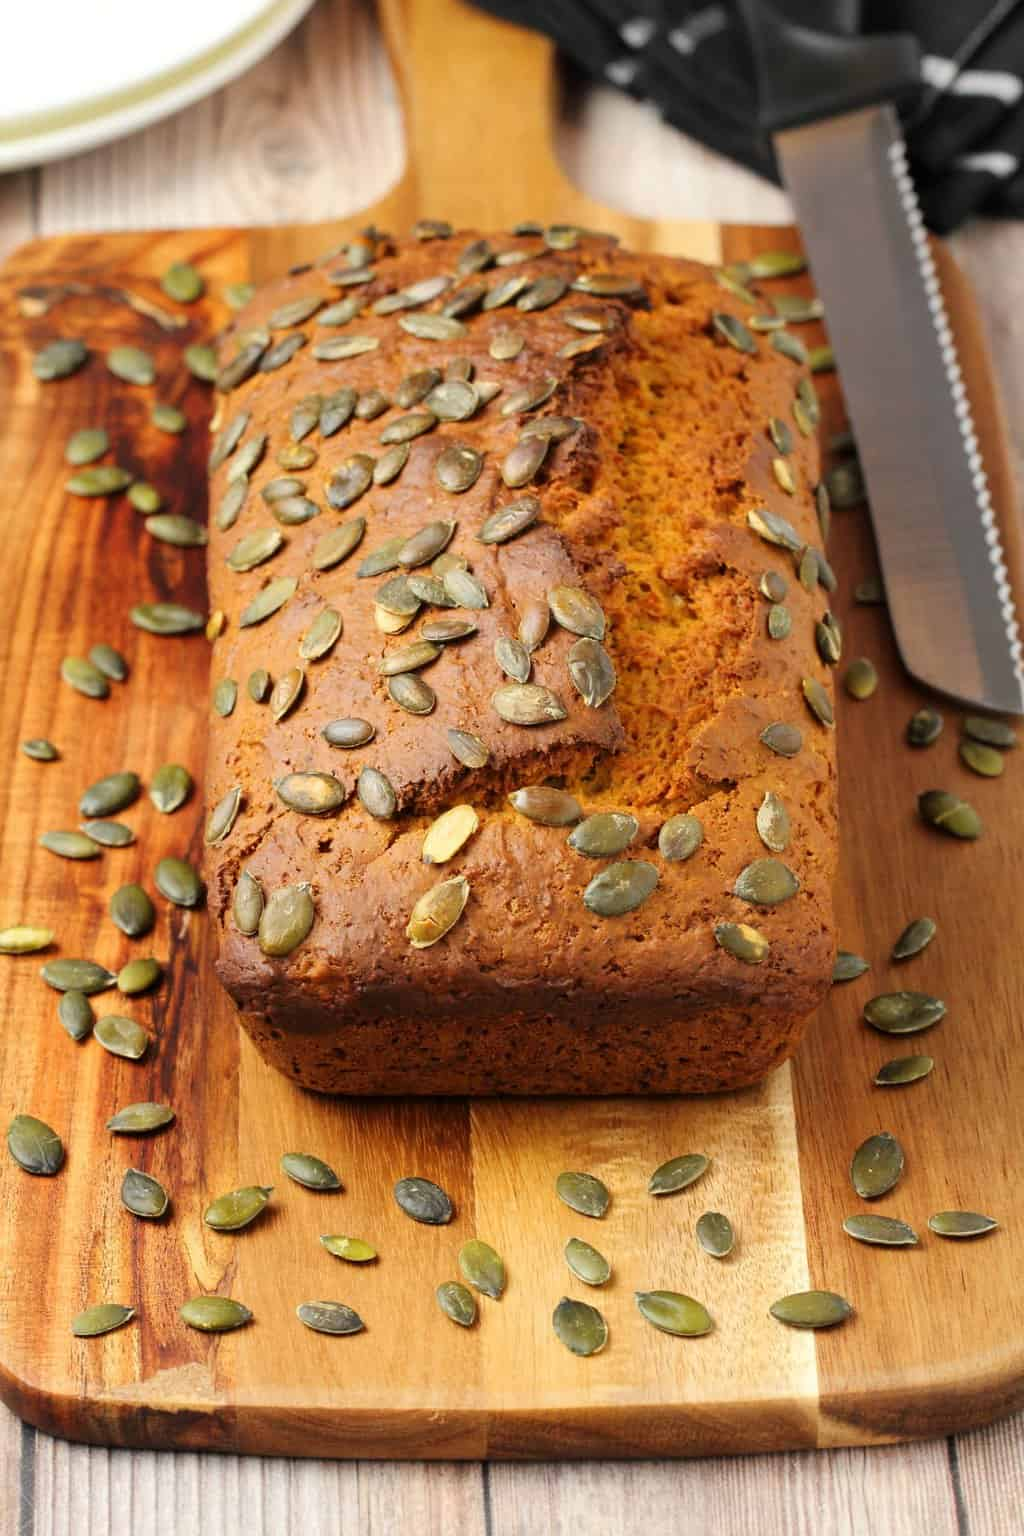 Vegan pumpkin bread topped with pumpkin seeds on a wooden board with a knife.